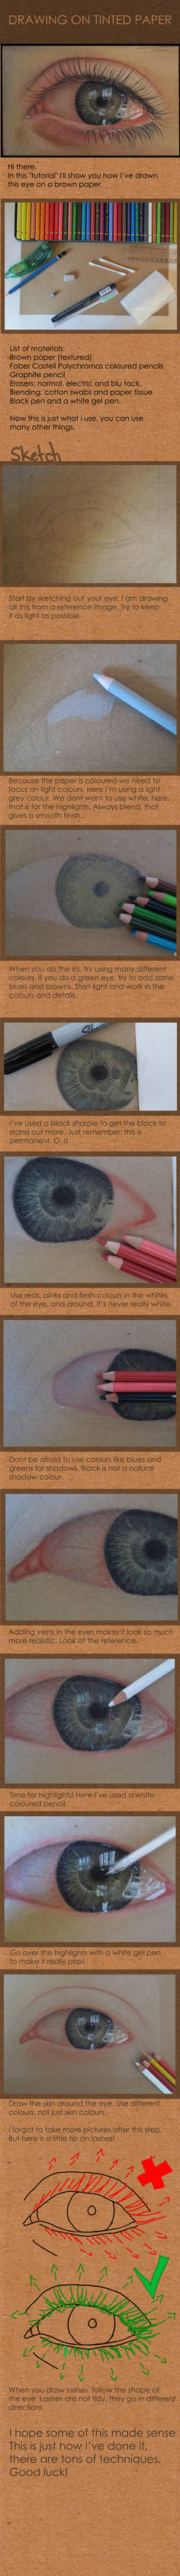 Drawing on tinted paper: Eye